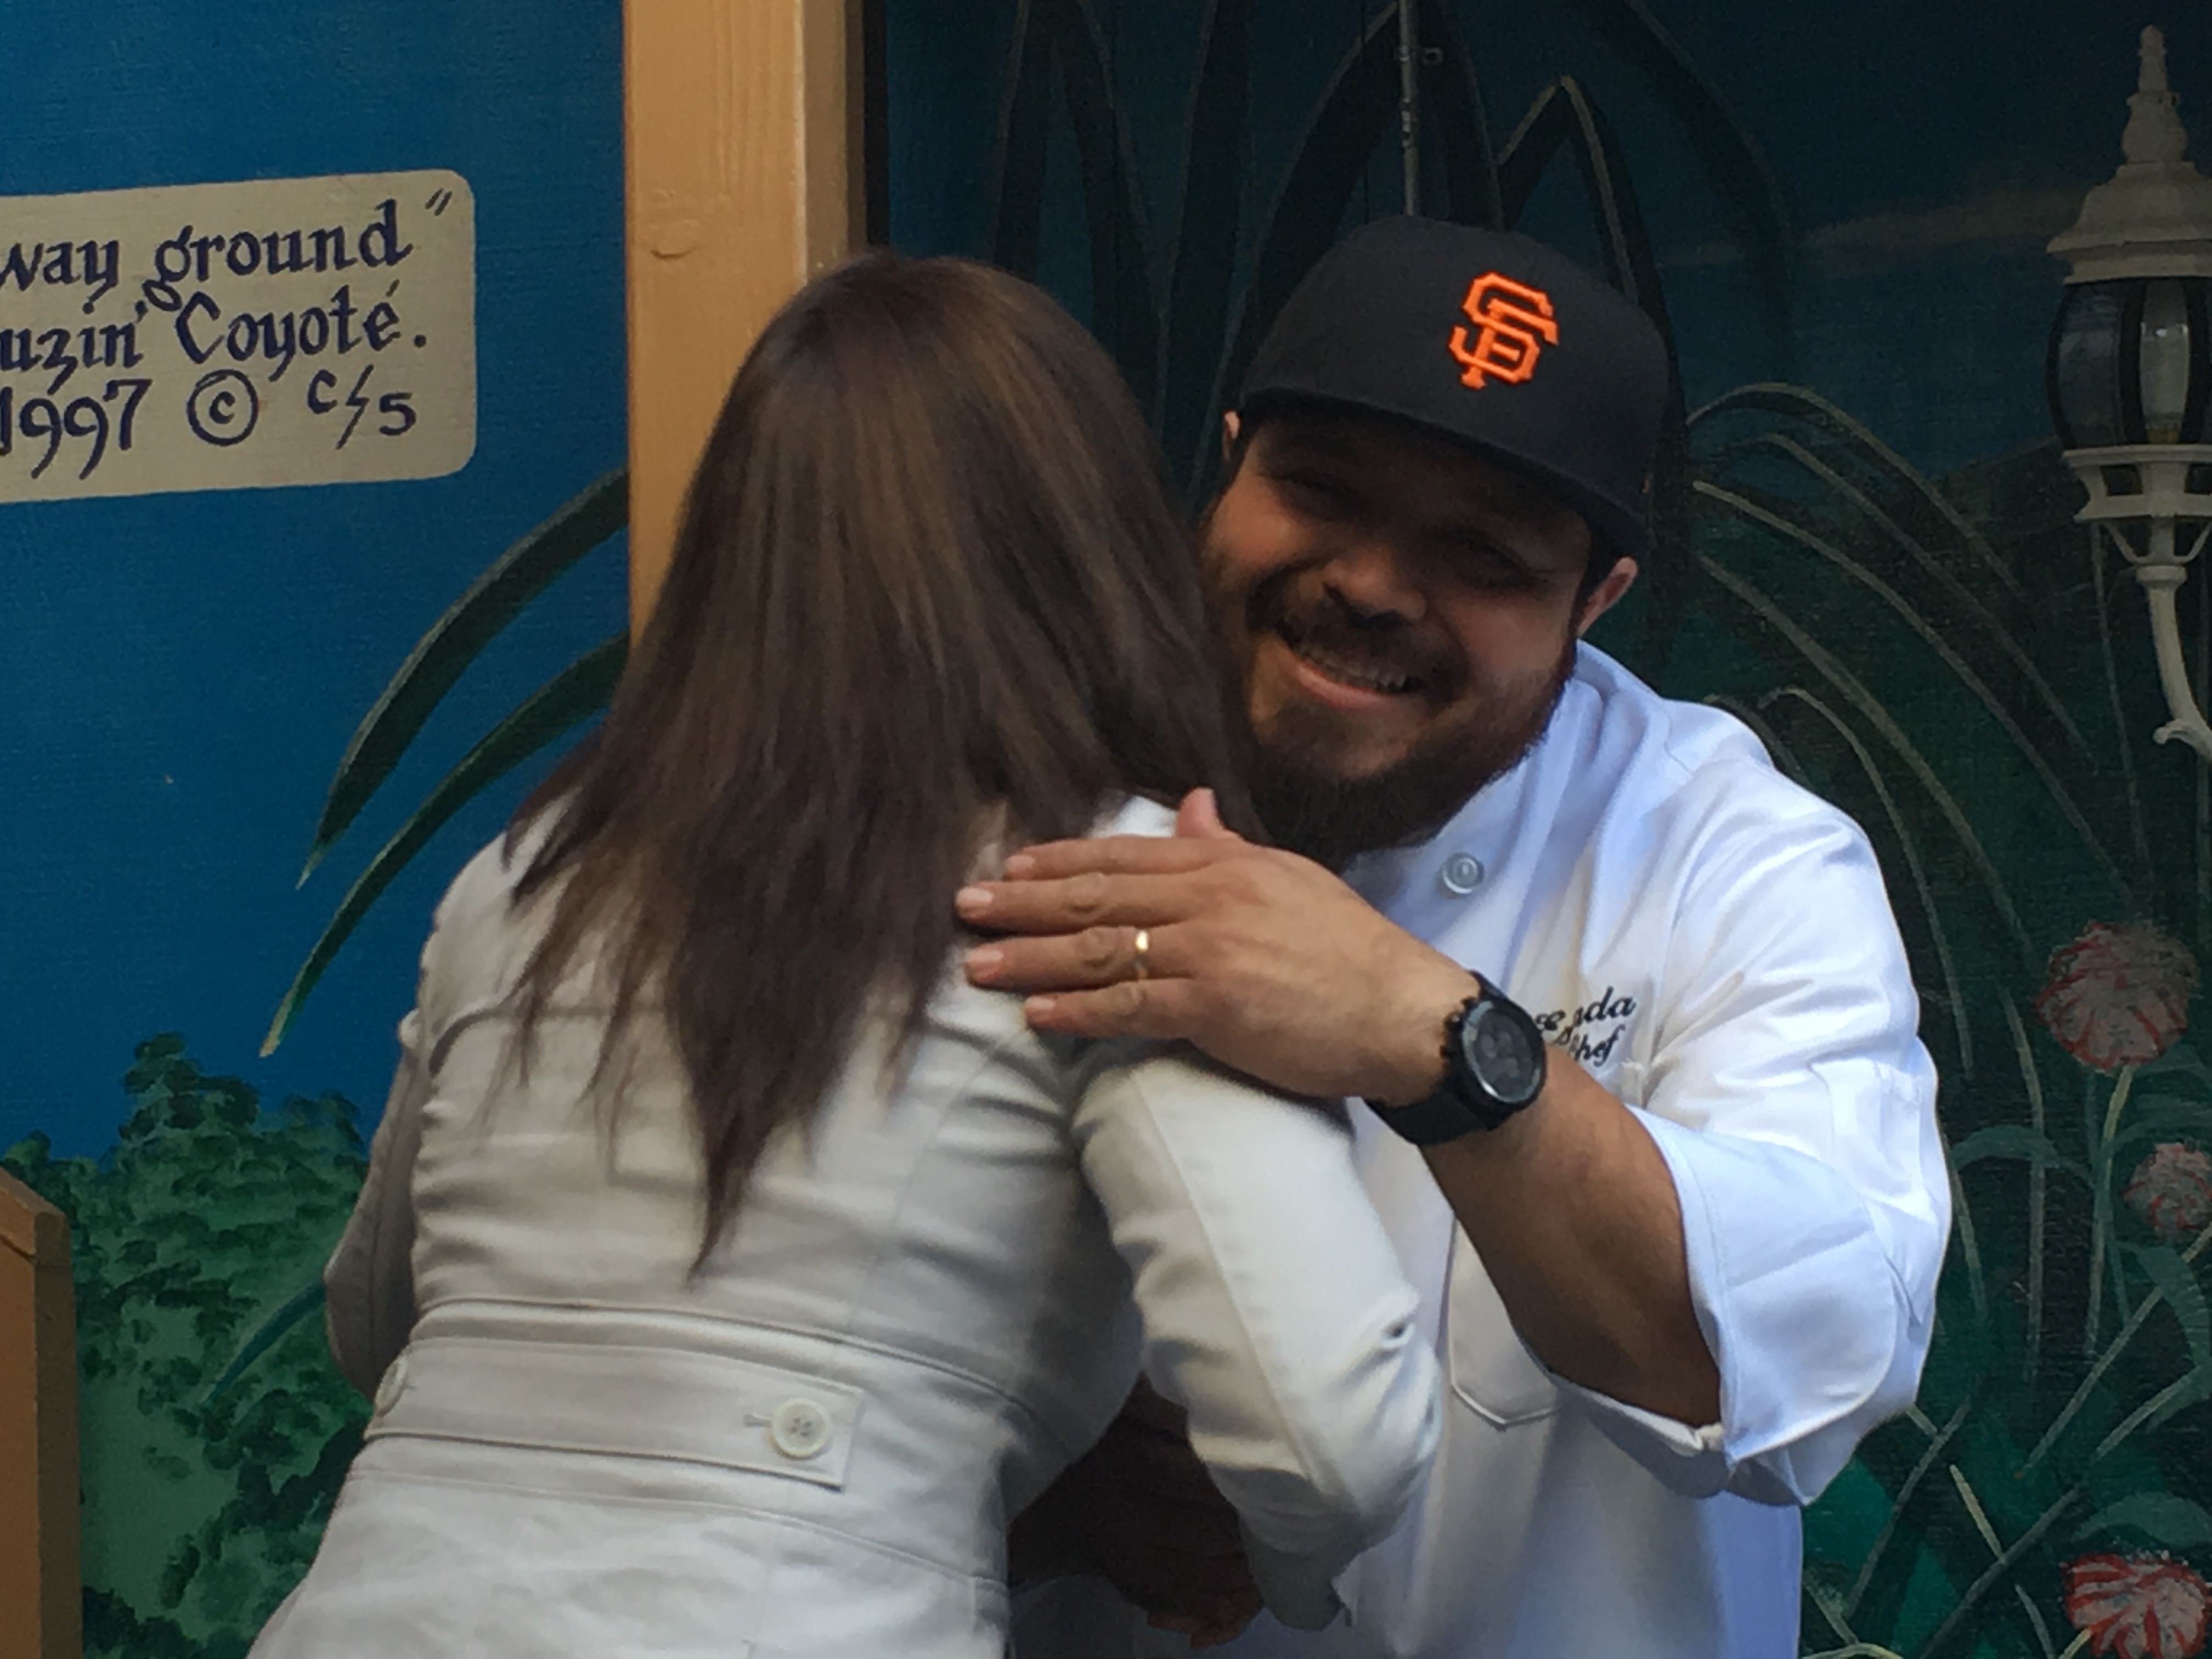 Luis Estrada at the D'Maize grand opening on Thursday, May 12. Photo by Joe Rivano Barros.